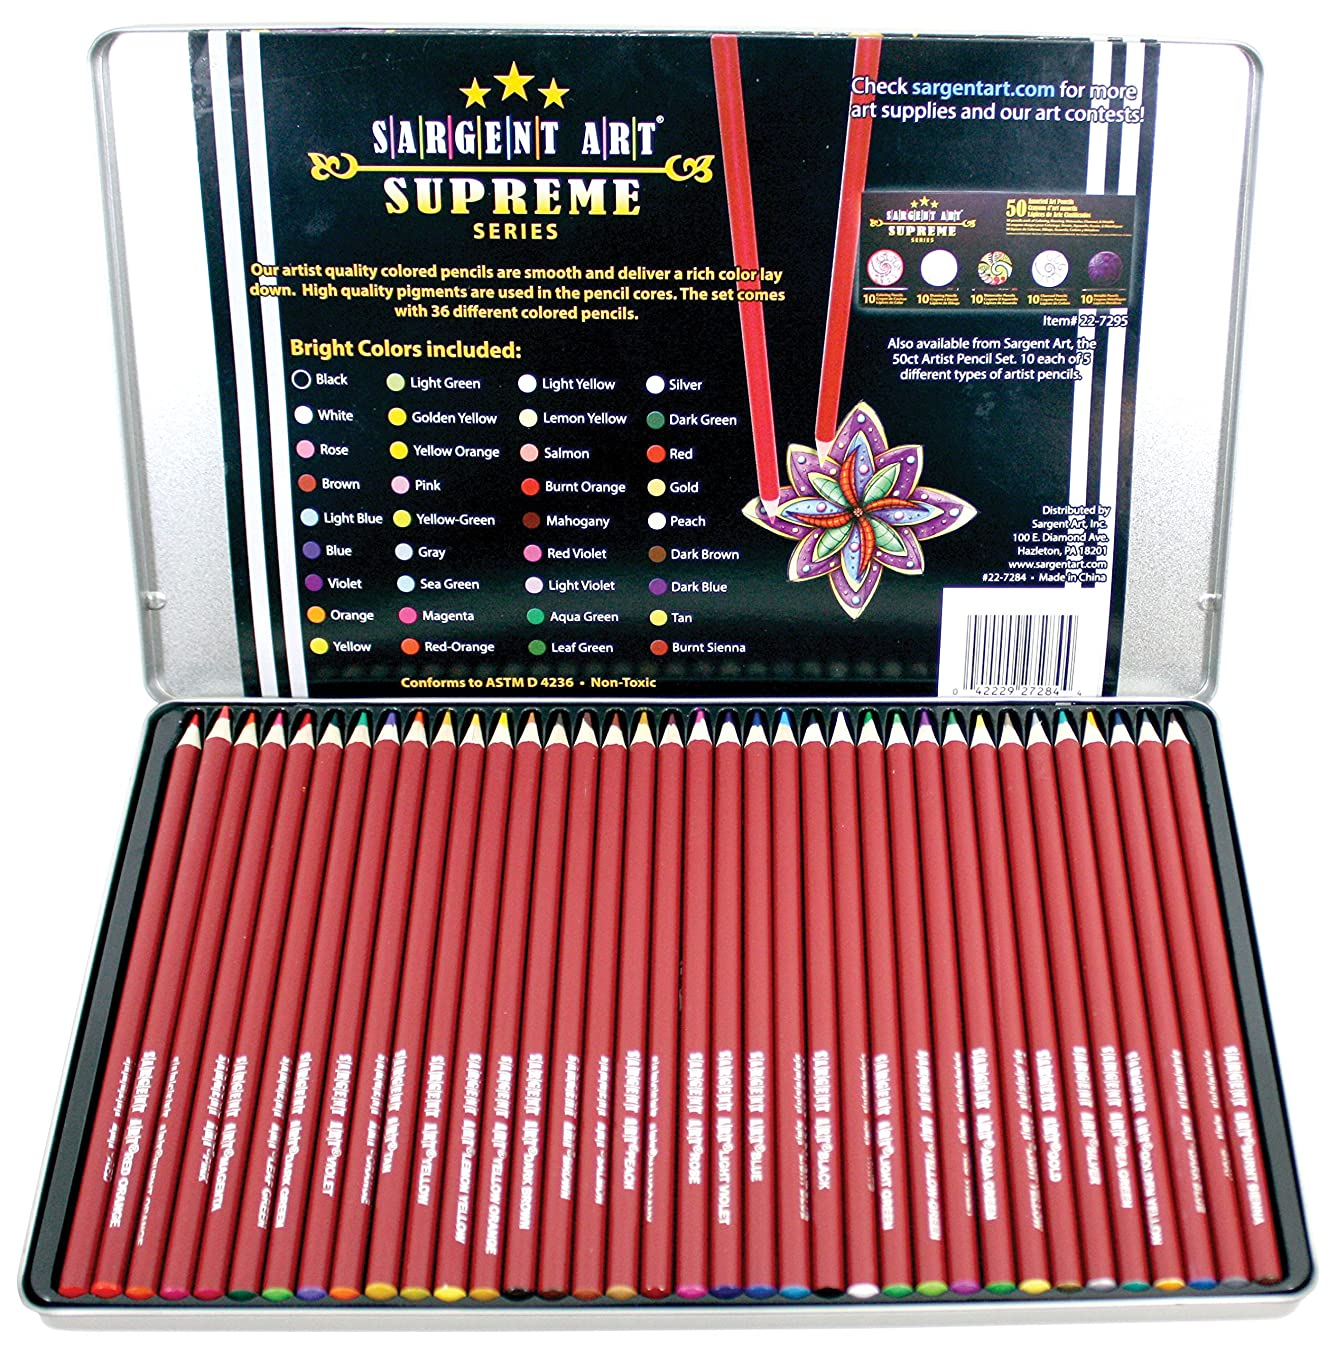 Sargent Art 22-7284 36 Count Supreme Artist Colored Pencil Set with Tin Storage Case